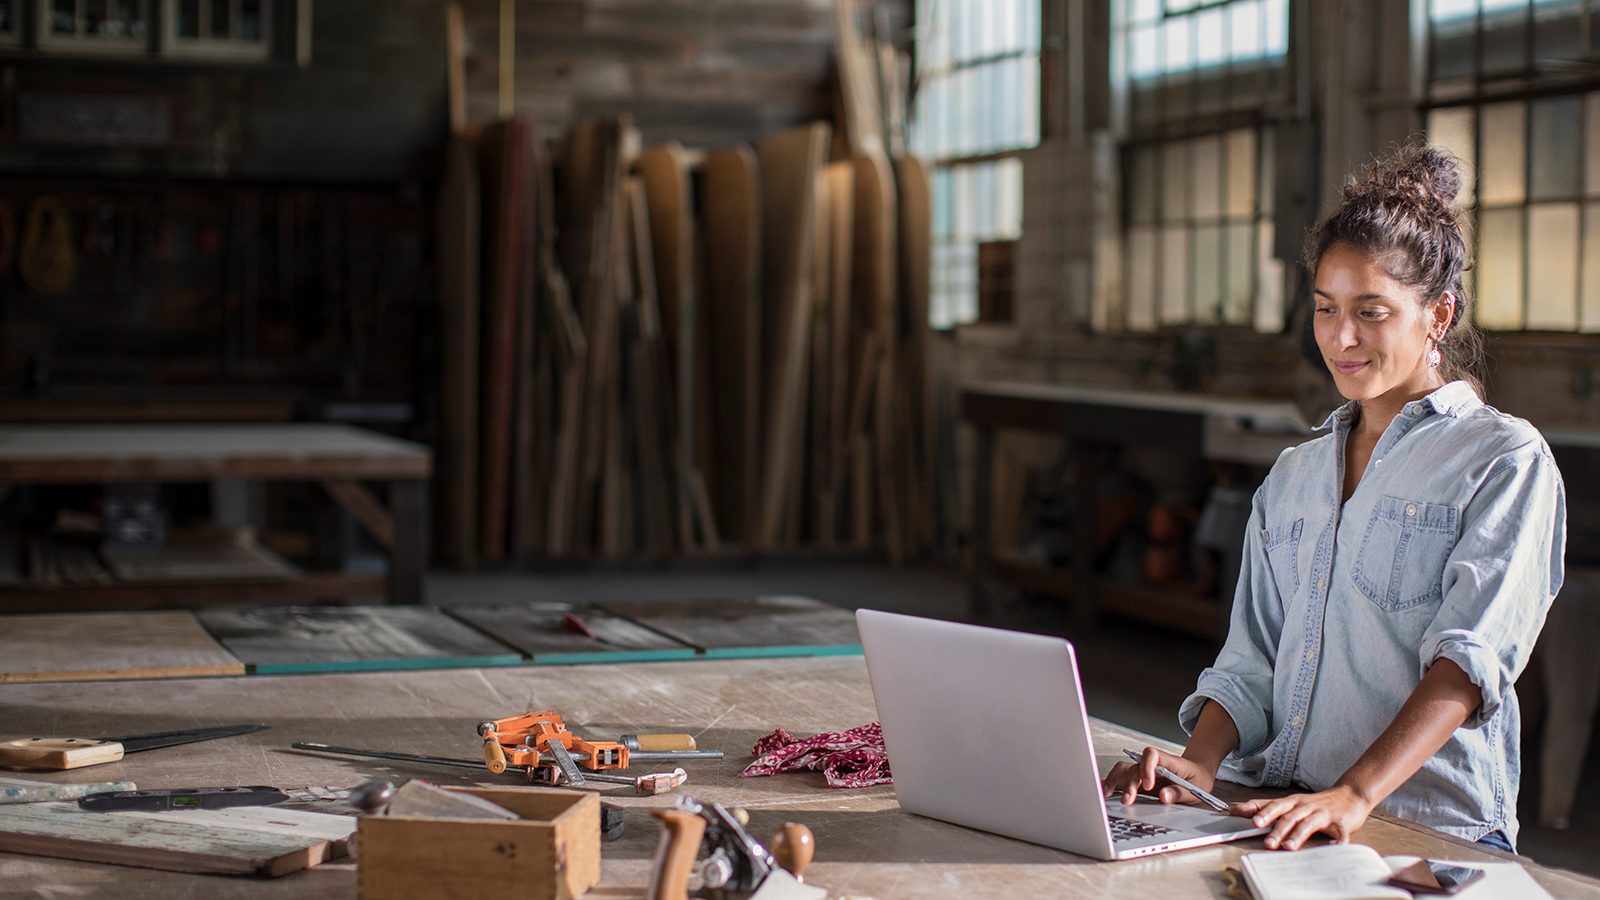 Young Mixed Race Female Entrepreneur Solving a Complicated Business Challenge with Pencil, Laptop, Carpentry Tools, and Confidence